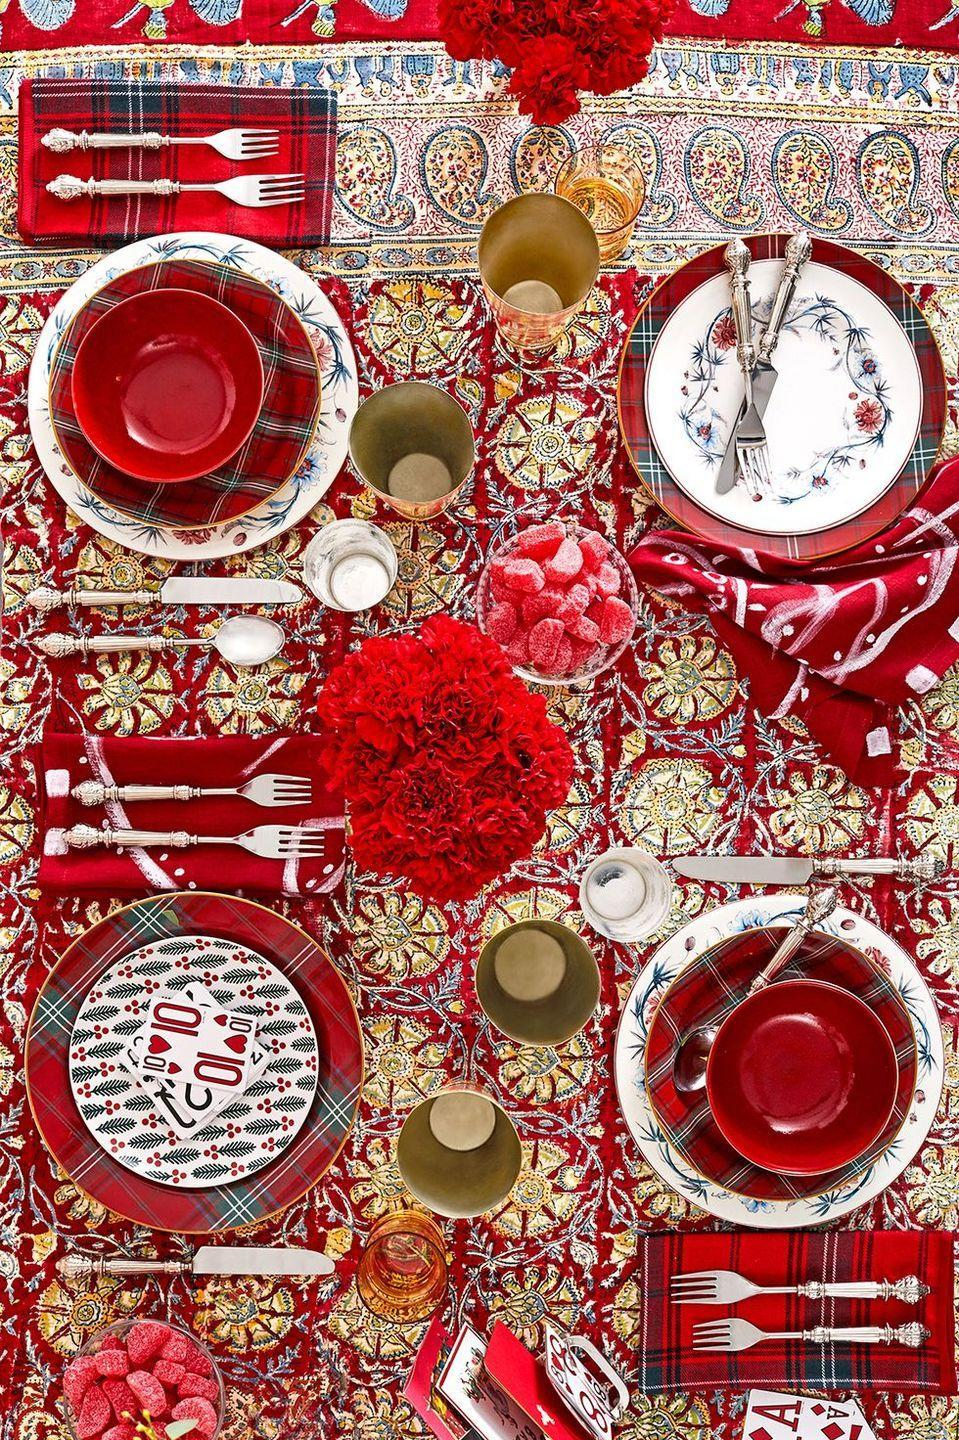 <p>Styled by Sara Rodrigues and Robert Rufino for House Beautiful, this festive Christmas brunch table is easier to create than it looks. Pair grocery-store carnations with tartan patterns, cinnamon candy, classic holiday motifs, and a pattern-packed tablecloth.</p>